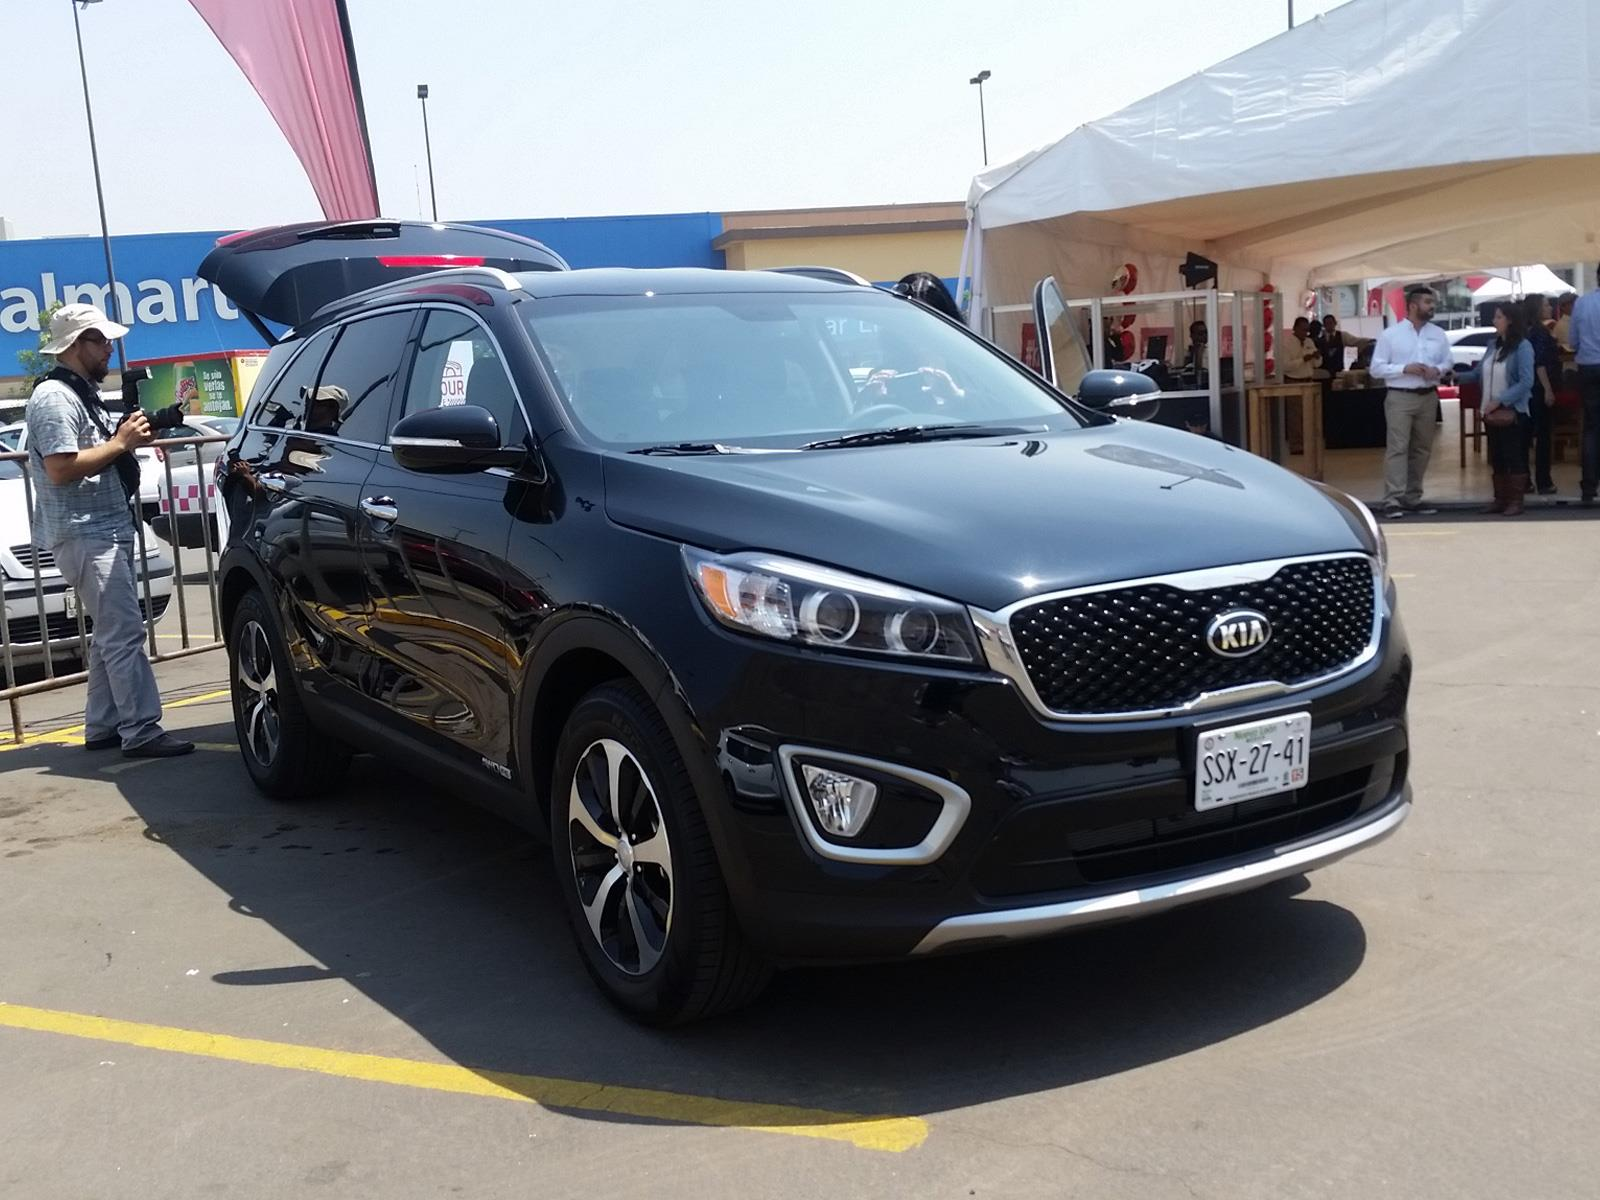 kia sorento 2015 llega a m xico desde 367 300 pesos. Black Bedroom Furniture Sets. Home Design Ideas